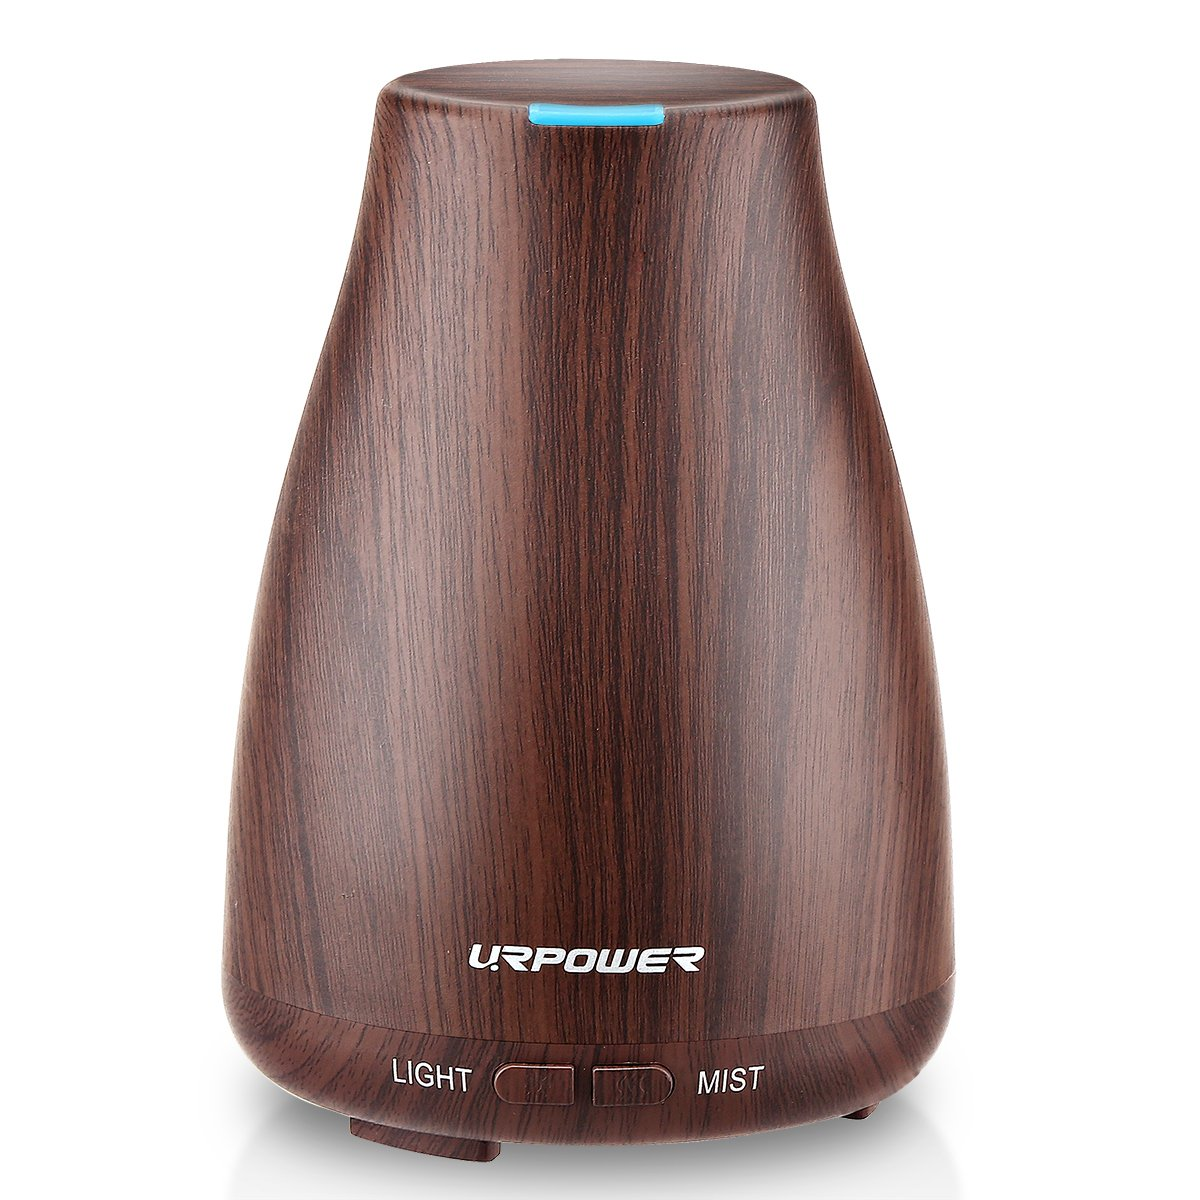 URPOWER 2nd Version Essential Oil Diffuser Aroma Essential Oil Cool Mist Humidifier with Adjustable Mist Mode,Waterless Auto Shut-off and 7 Color LED Lights Changing for Home Office Baby